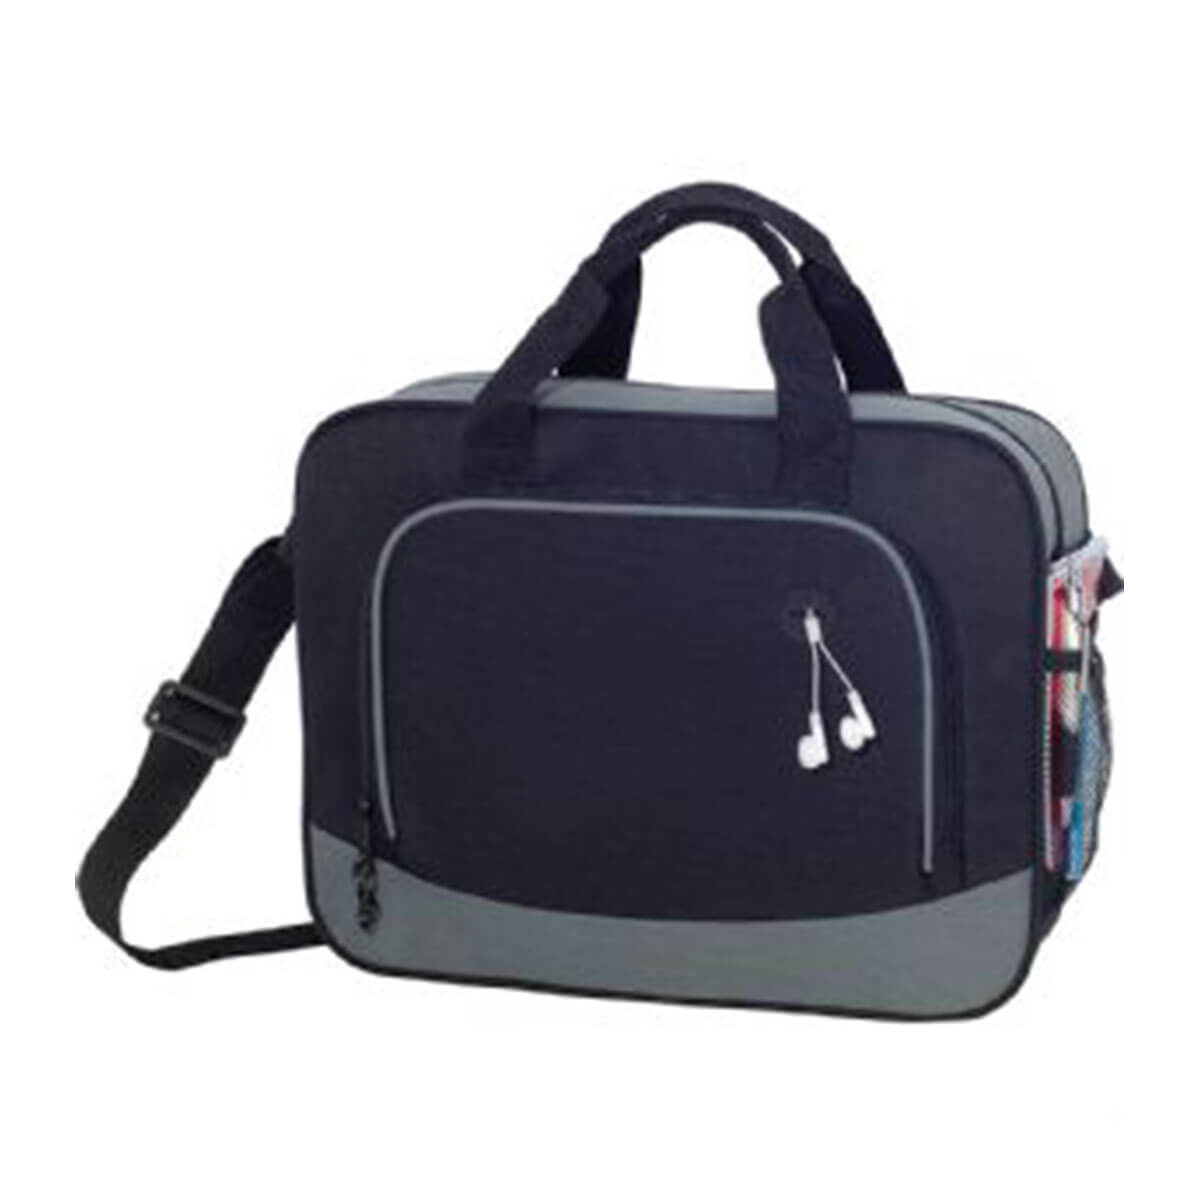 Barracuda Business Briefcase-Black/Grey